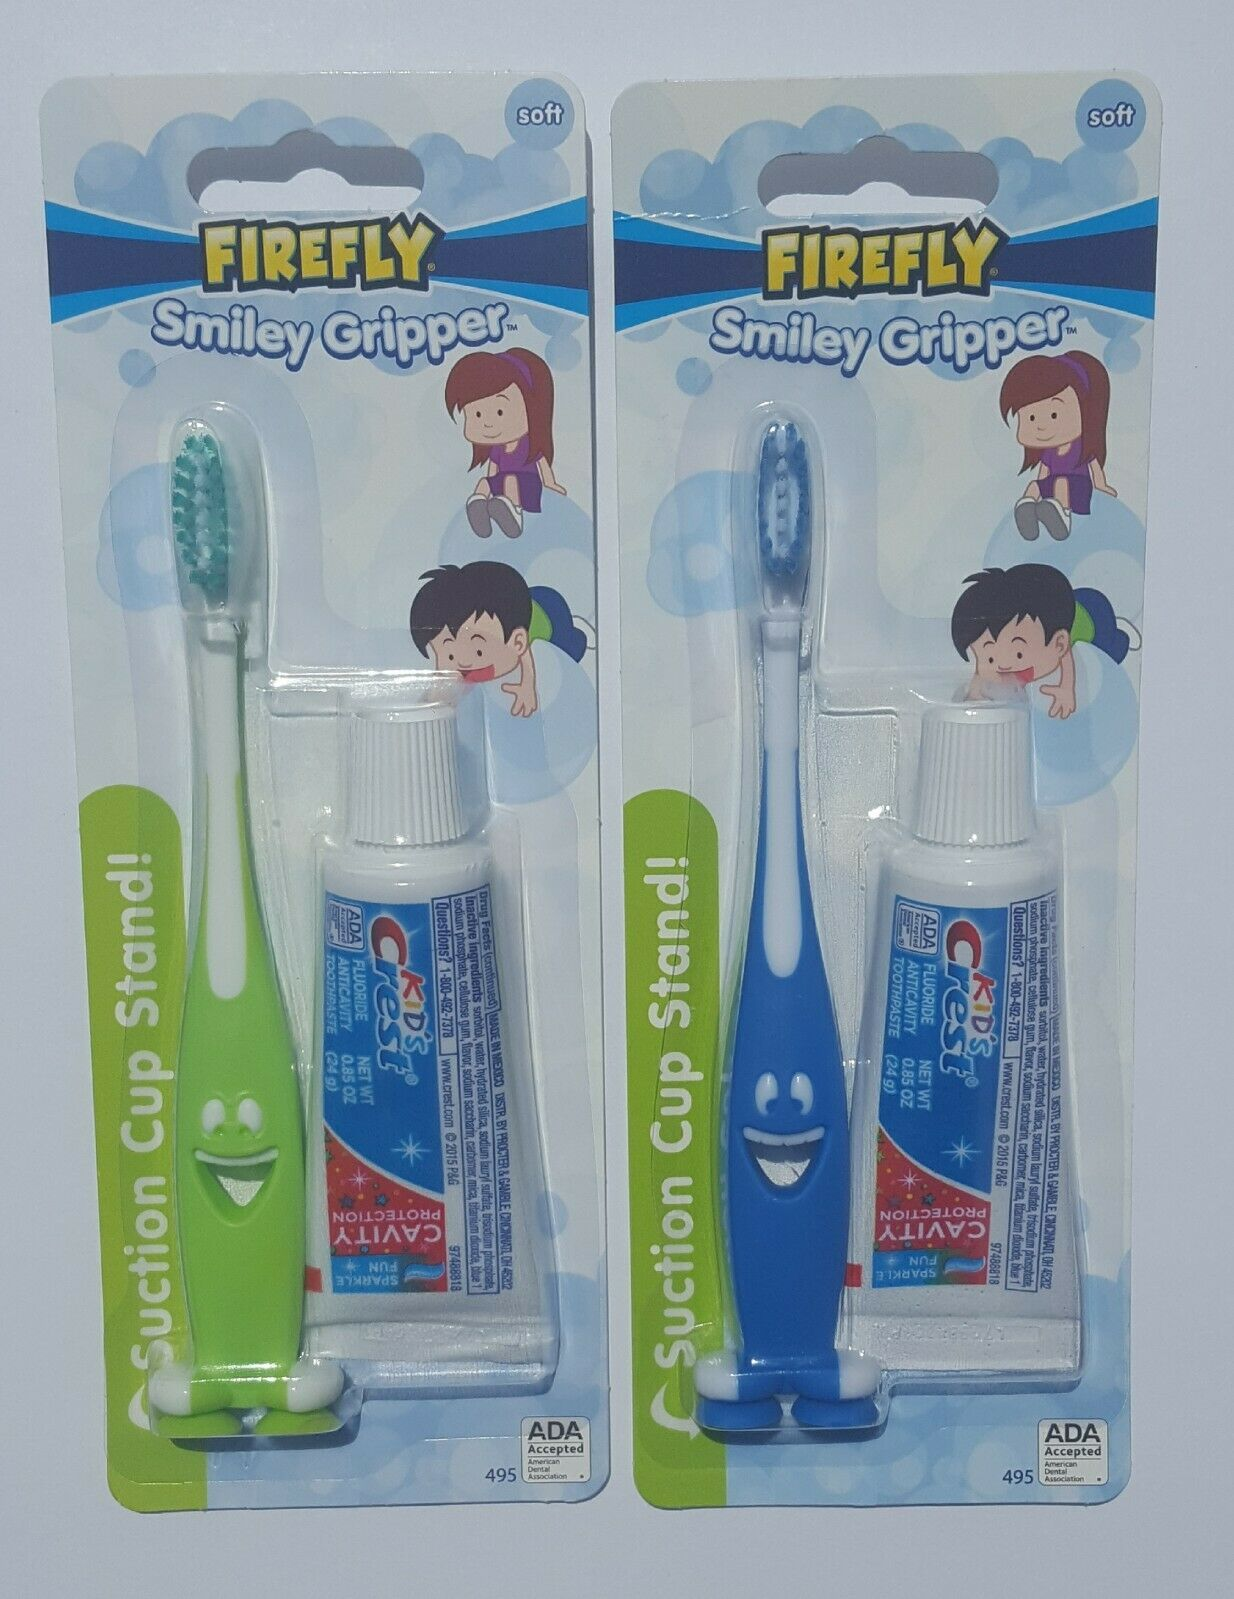 Firefly Smiley Gripper soft Toothbrush Kids Crest Suction Cup Stand green & blue - $6.99